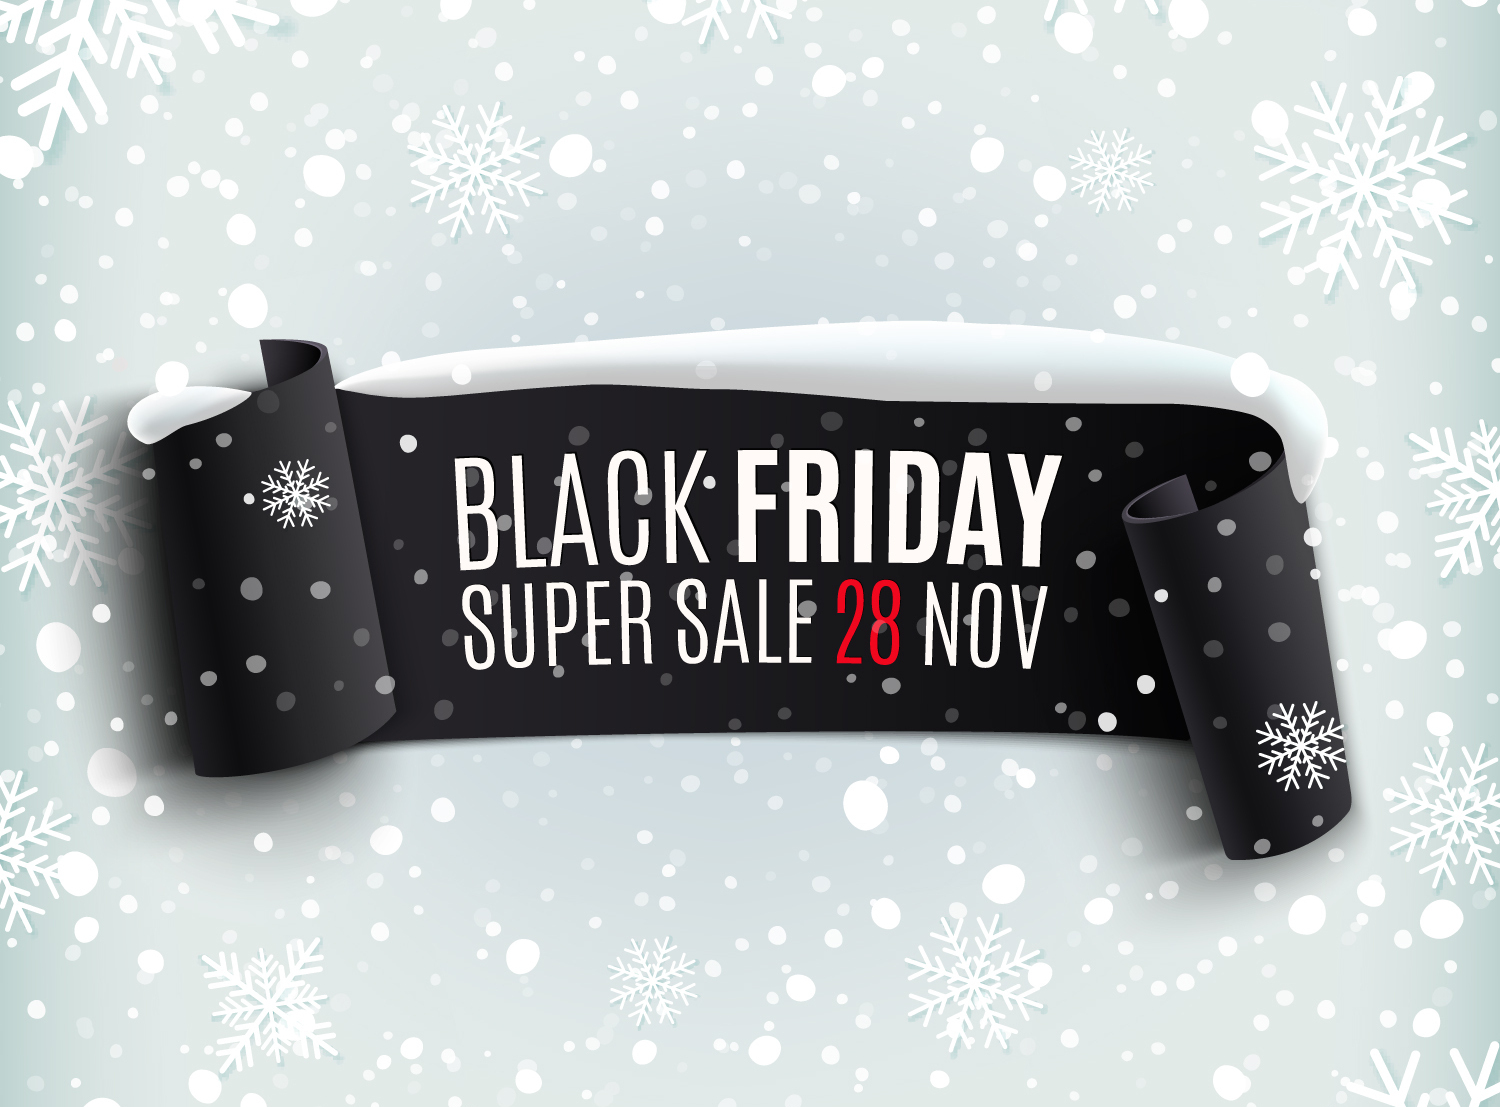 Best Black Friday tweets from UK retailers